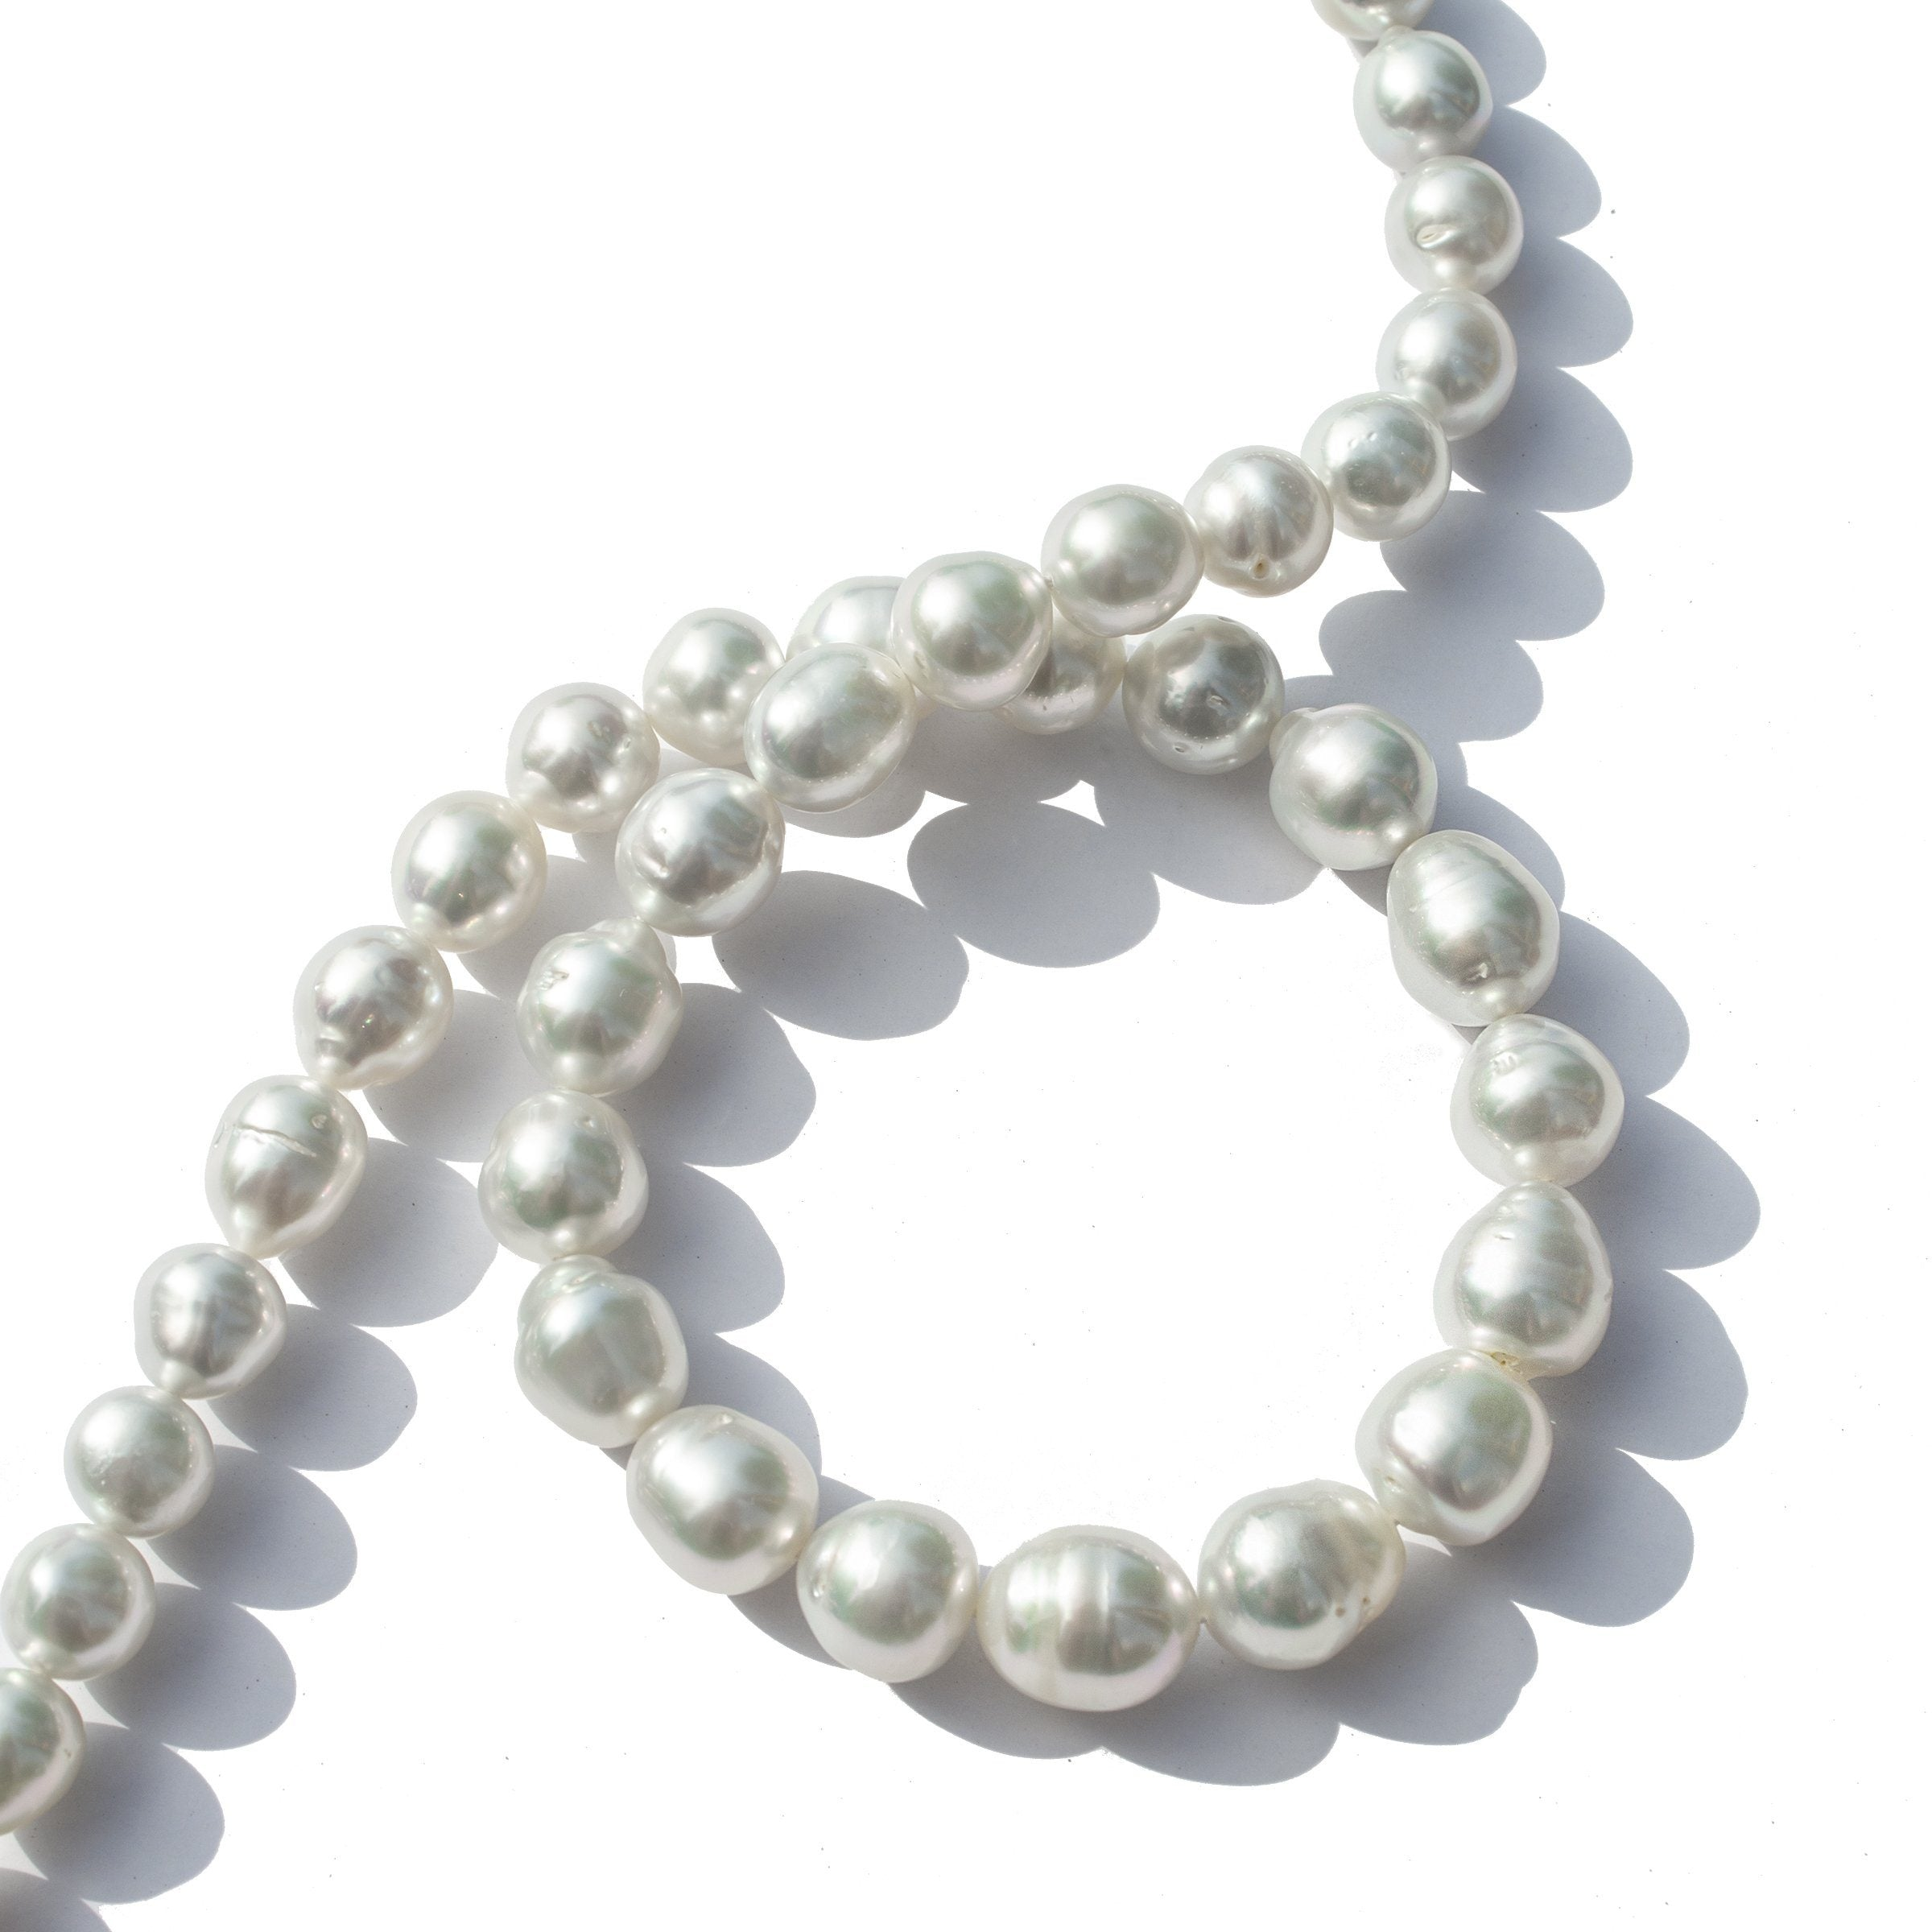 8.3-11.7 mm AA+/AAA White South Sea Baroque Necklace